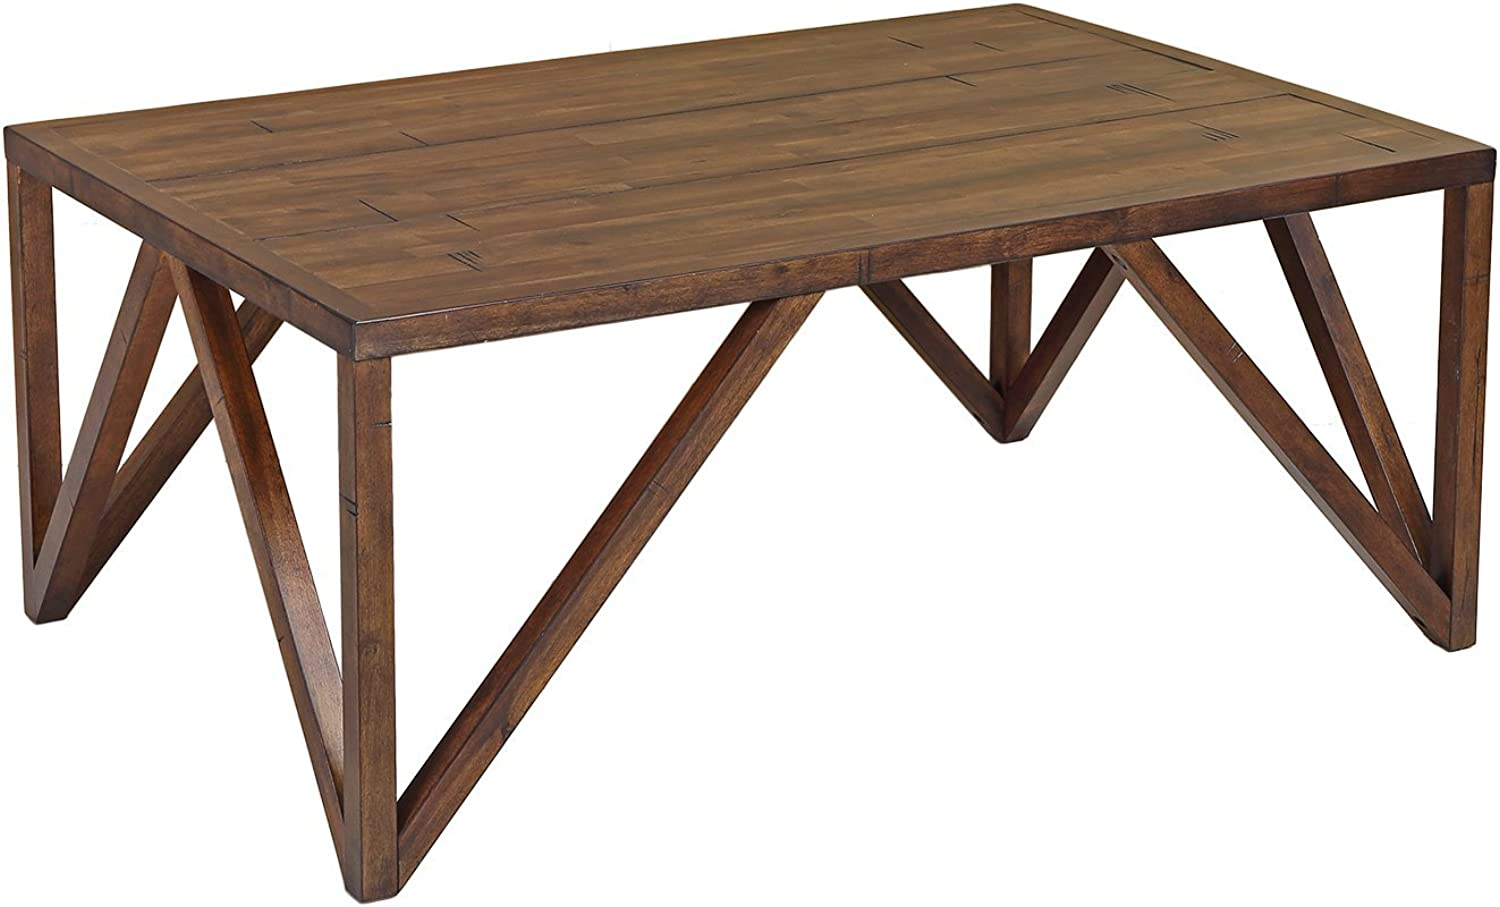 Craft and Main CFO-01281 Old World Chestnut Bali Coffee Table, 45  x 30